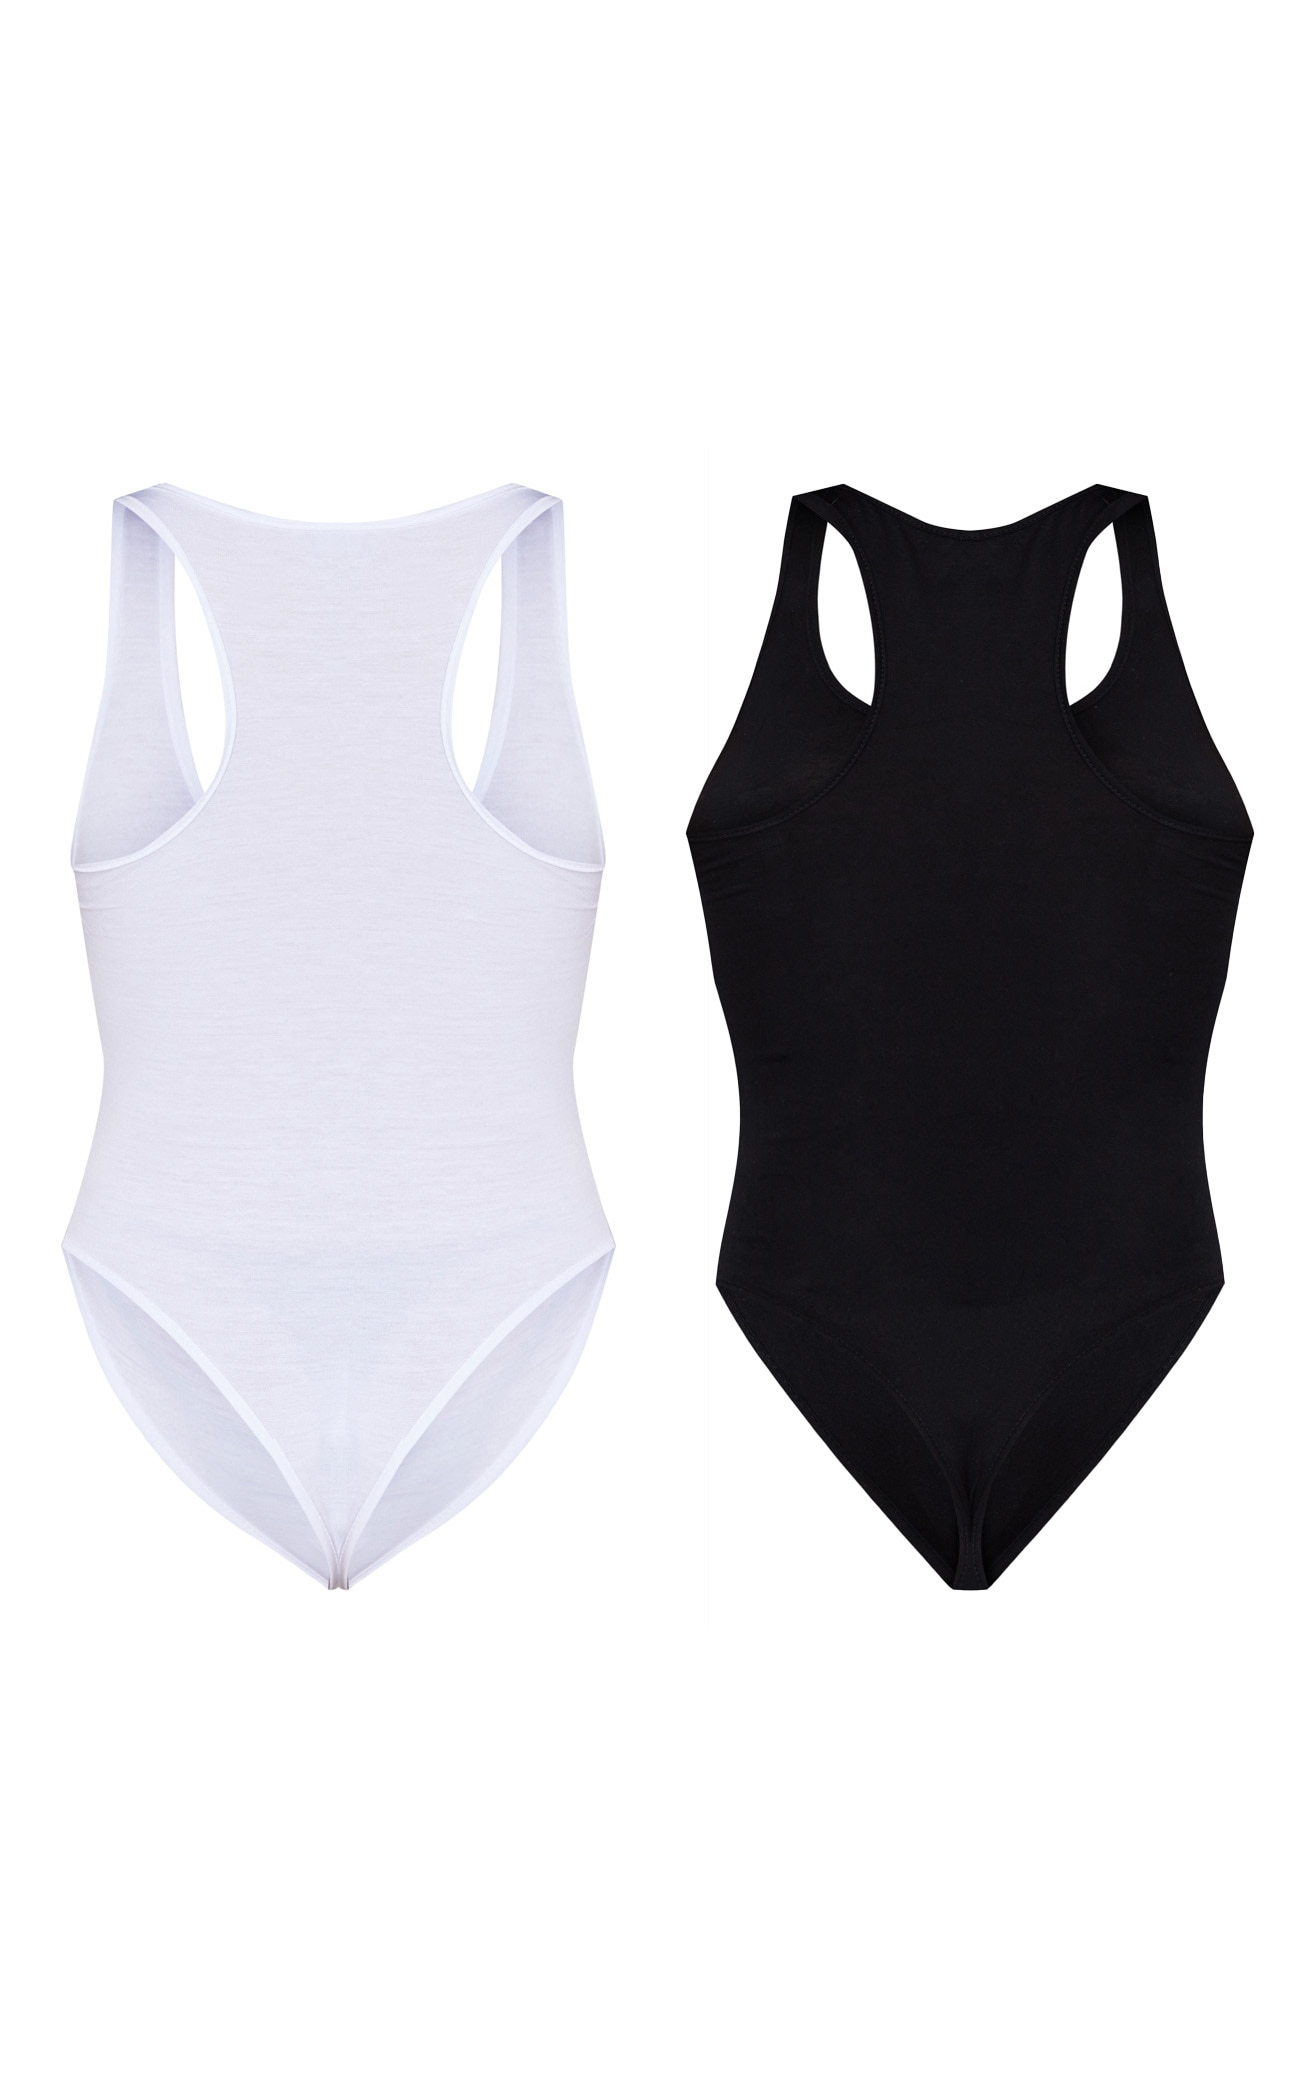 Basic Black & White Racer Back Bodysuit 2 Pack 6